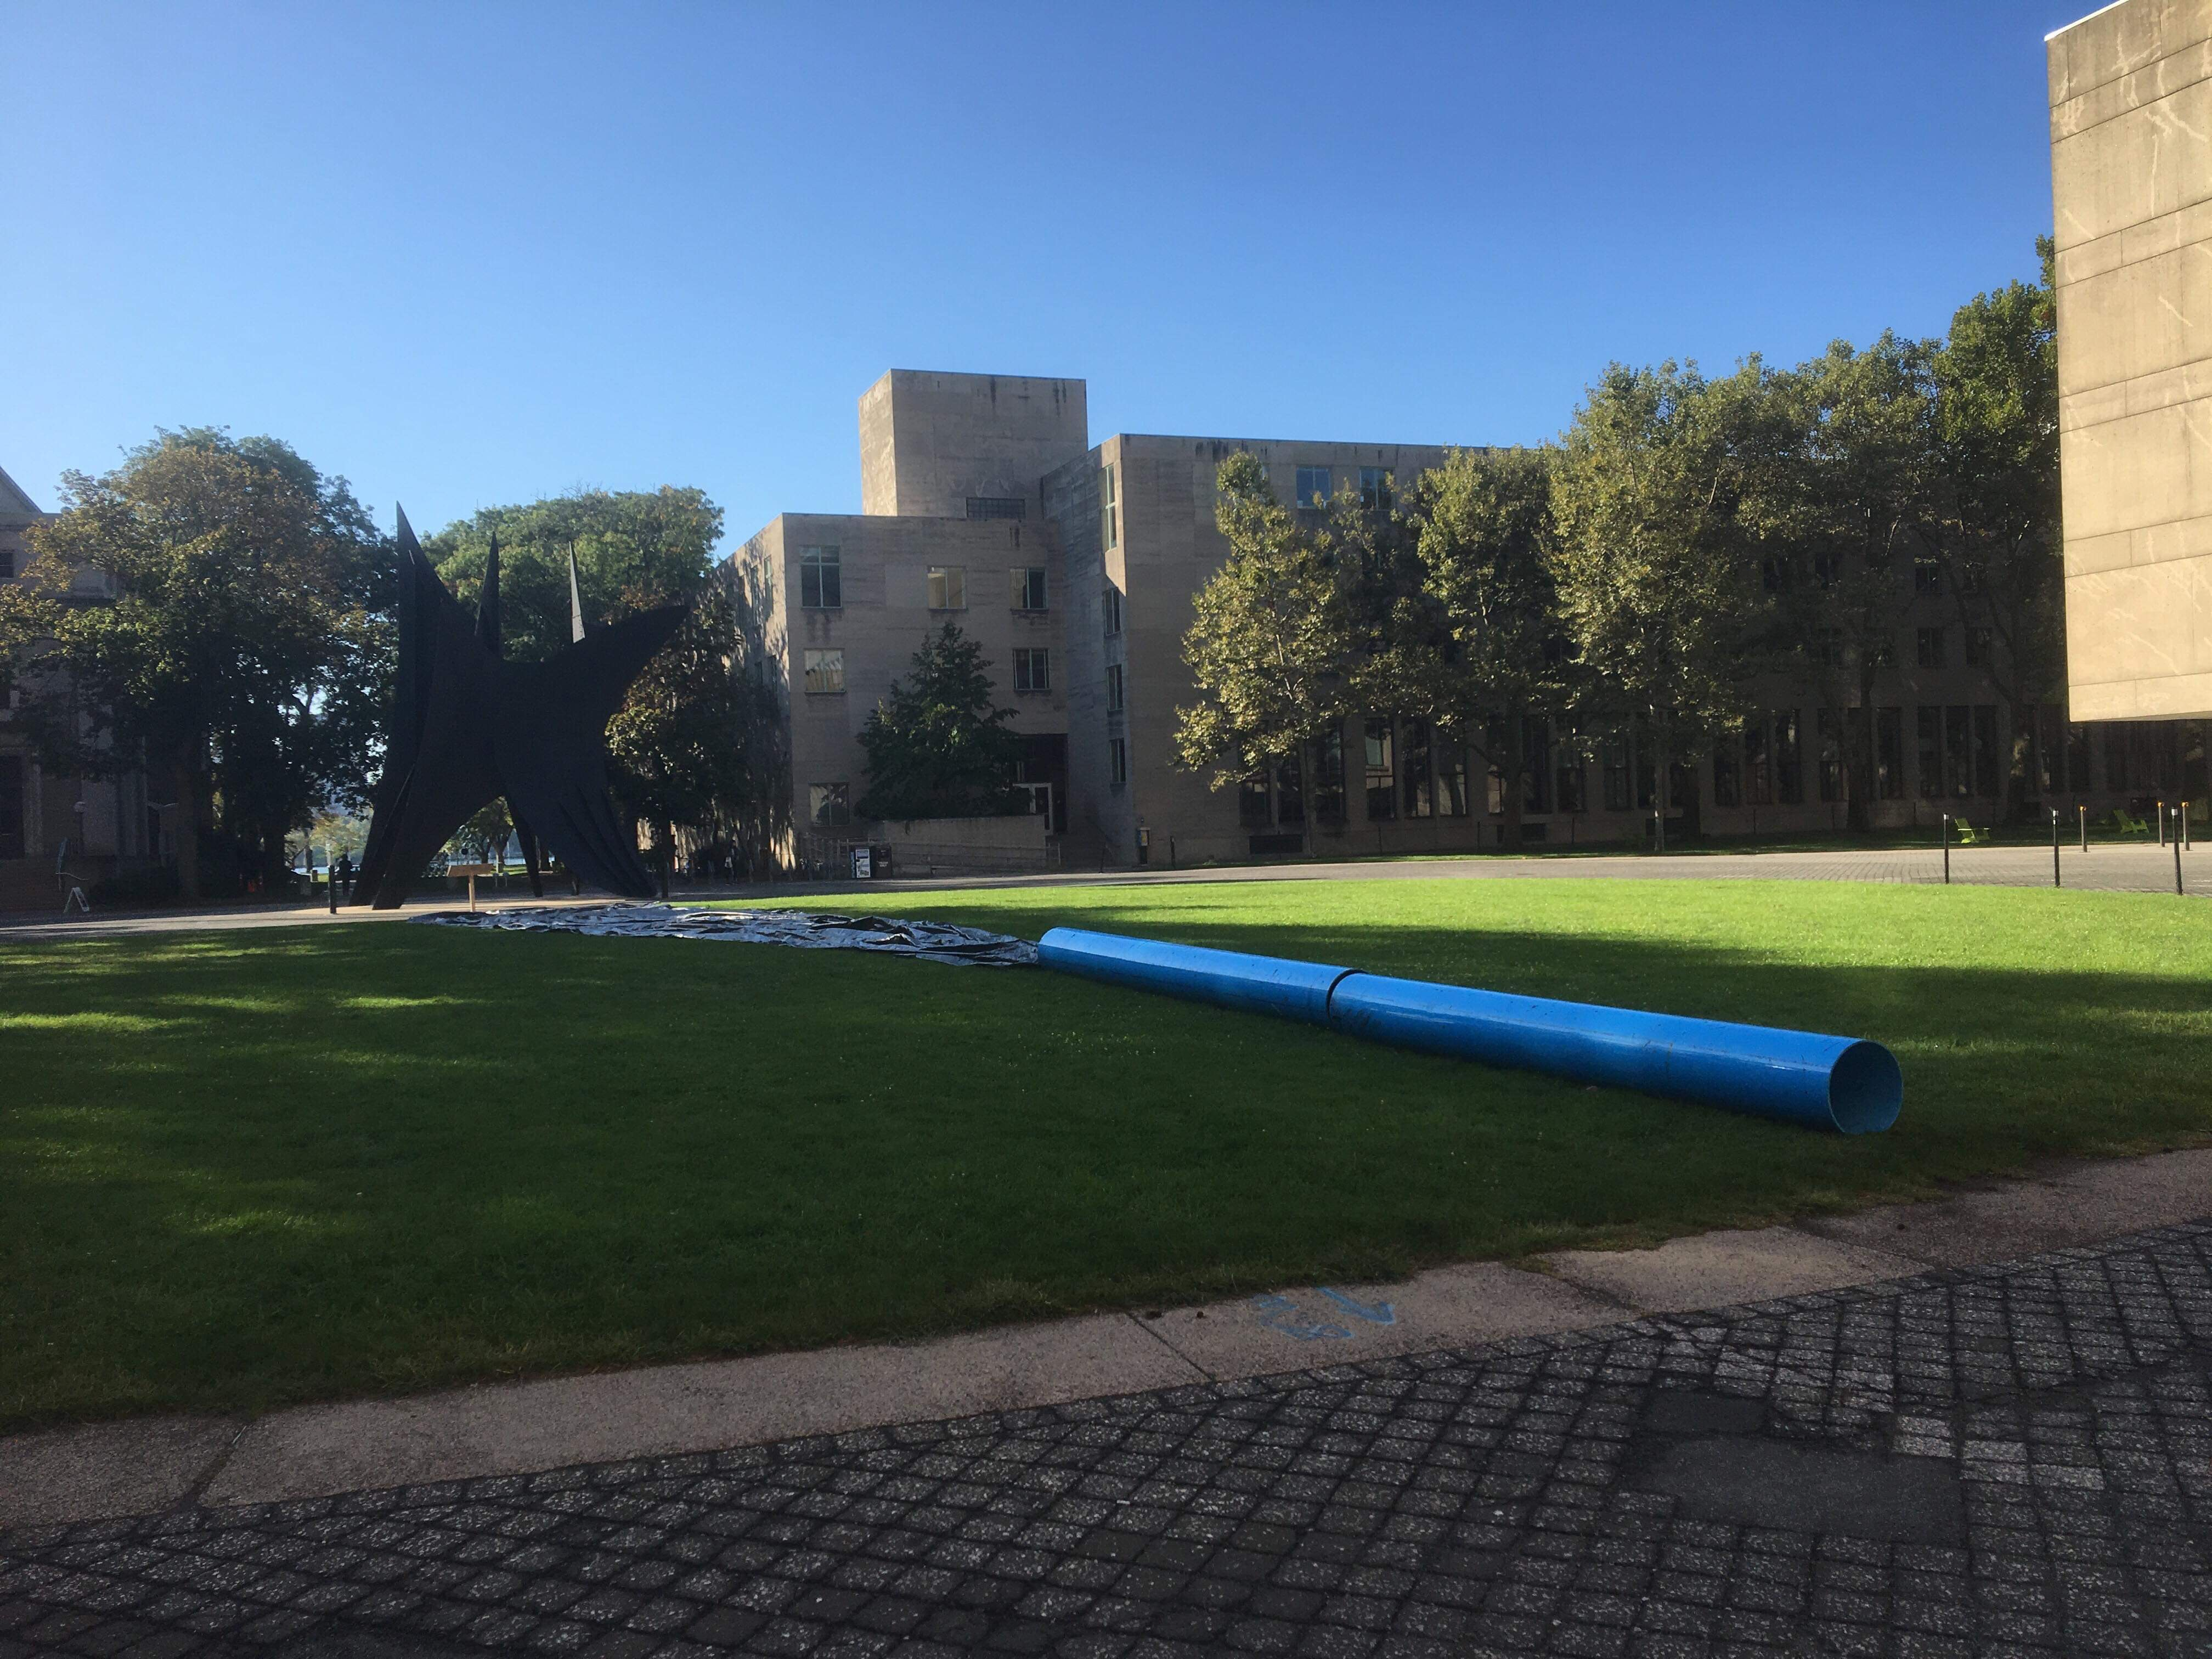 The hack from the ground. The photo is taken next to the large, bright blue pipe. Streaming away from it into the background is the black tarp.